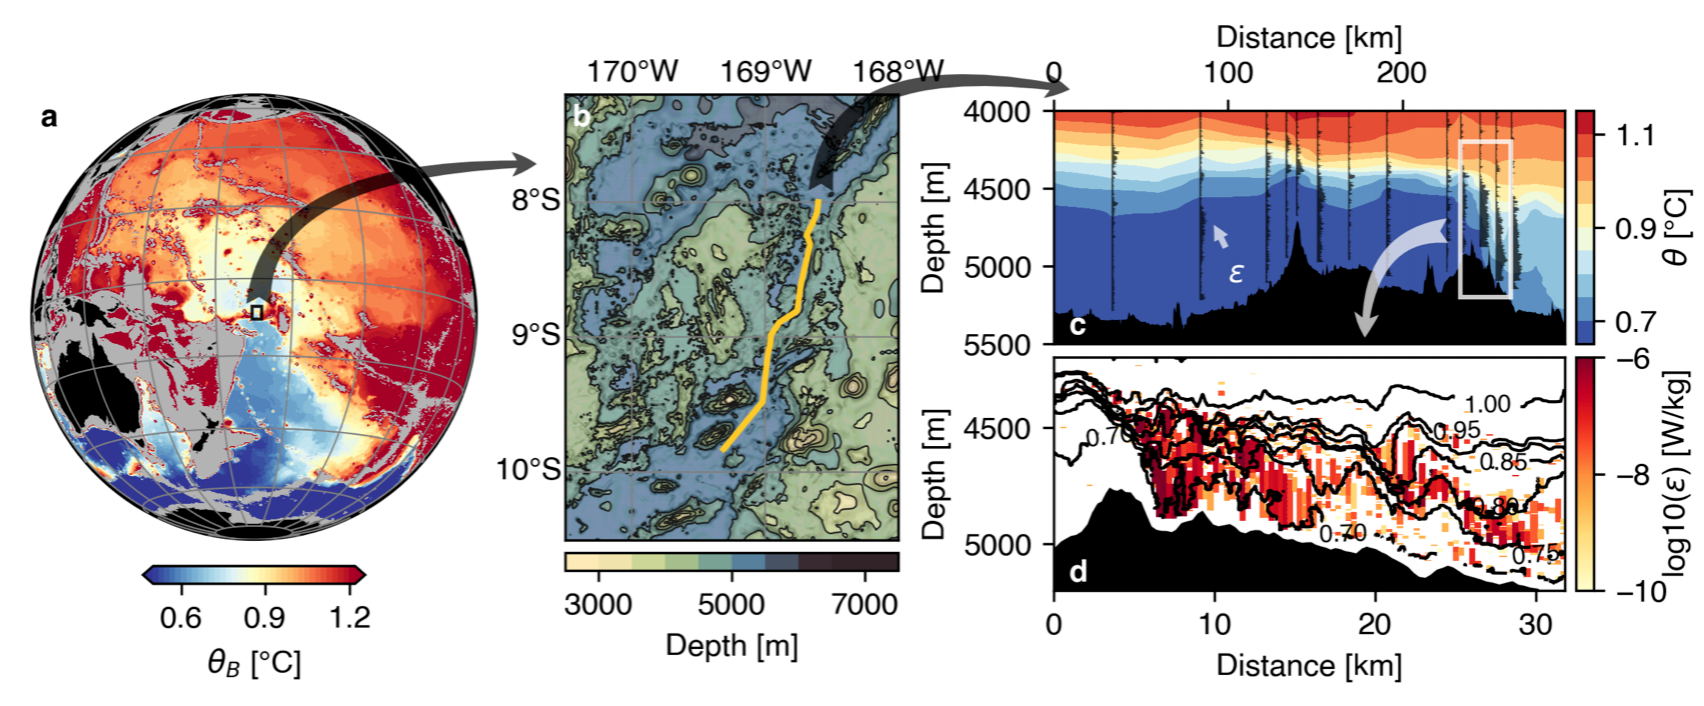 The Samoan Passage in the Pacific Ocean. a) Bottom temperature in the Pacific Ocean from the WOCE climatology. The Samoan Passage is located at the center. b) Bathymetry of the Samoan Passage with shallower channels to the west and a main channel to the east. c) Section of potential temperature (colors) and turbulent dissipation (black profiles) along the main channel (yellow in b). d) A towyo section across a major sill showing temperature (black contours) and turbulent dissipation estimates from density instabilities (color) at high spatial resolution.